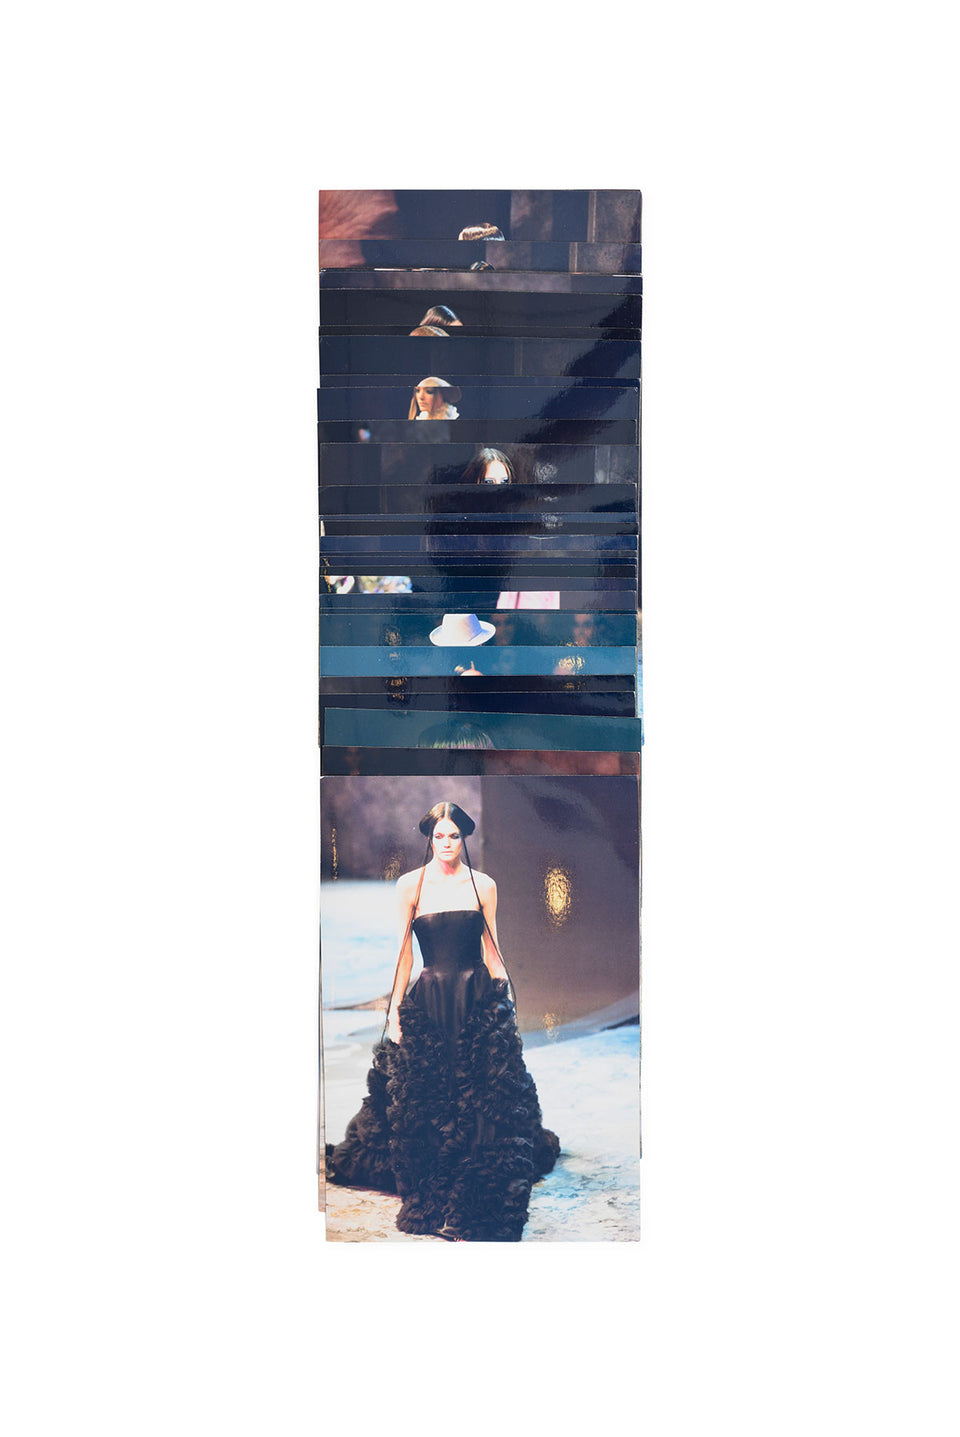 PHOTO RUNWAY GIVENCHY BY ALEXANDER McQUEEN